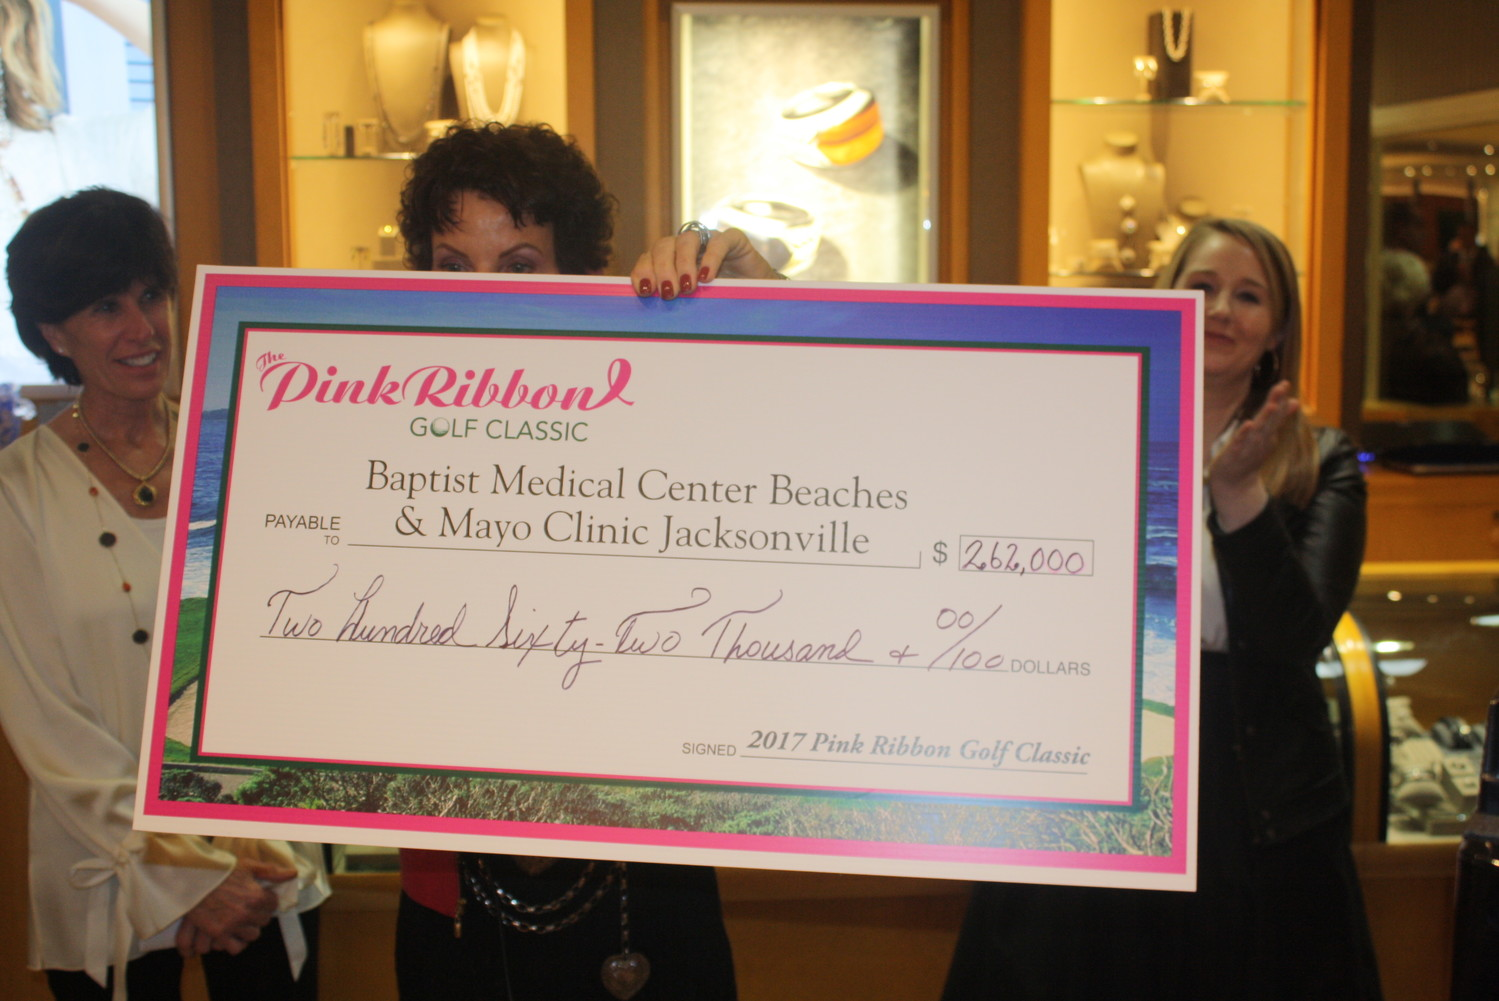 Pink Ribbon co-chair Nancy Morrison displays the check total of $262,000.